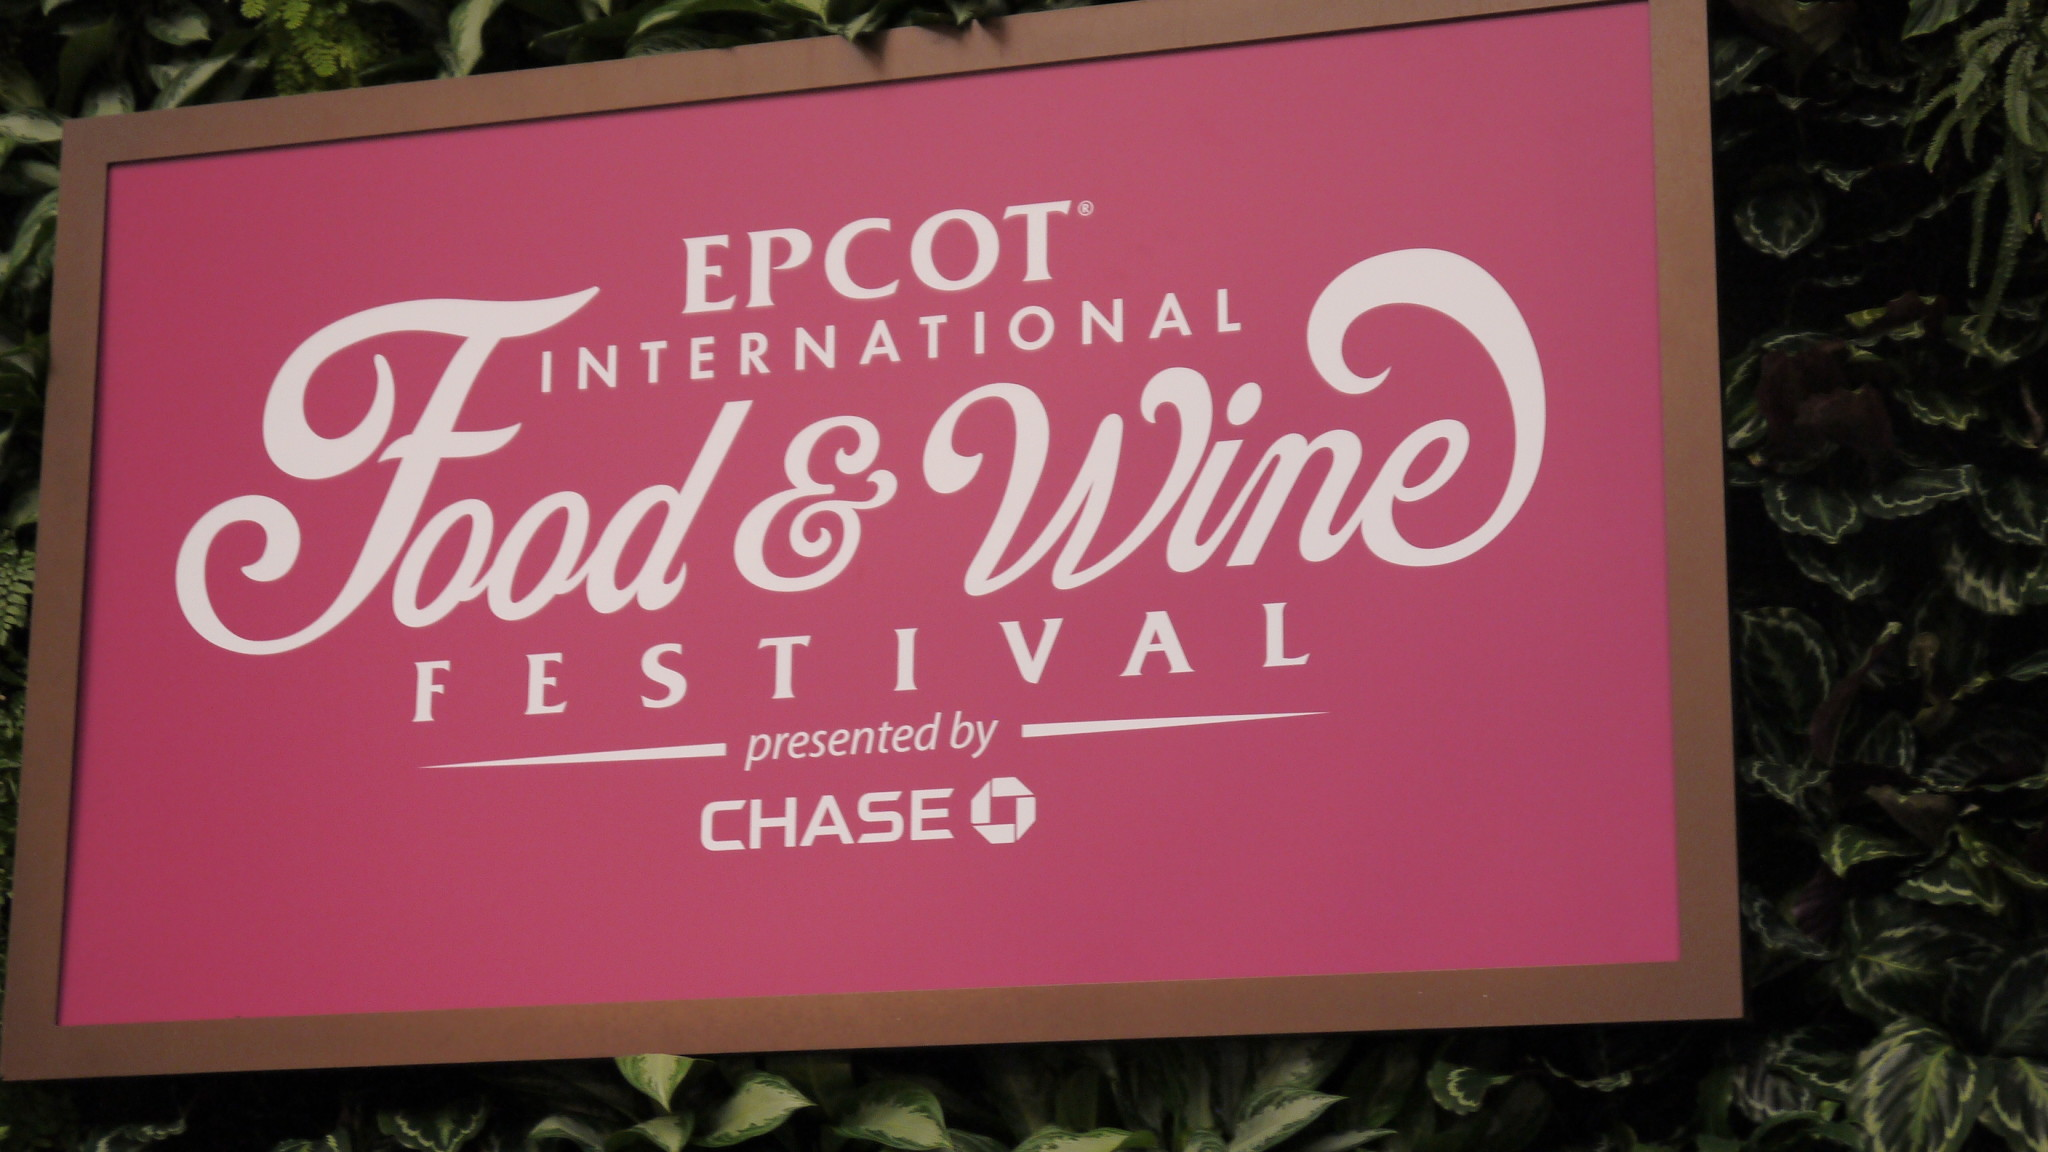 if you have not yet been to the annual epcot international food wine festival at the walt disney world resort in florida you should consider adding this